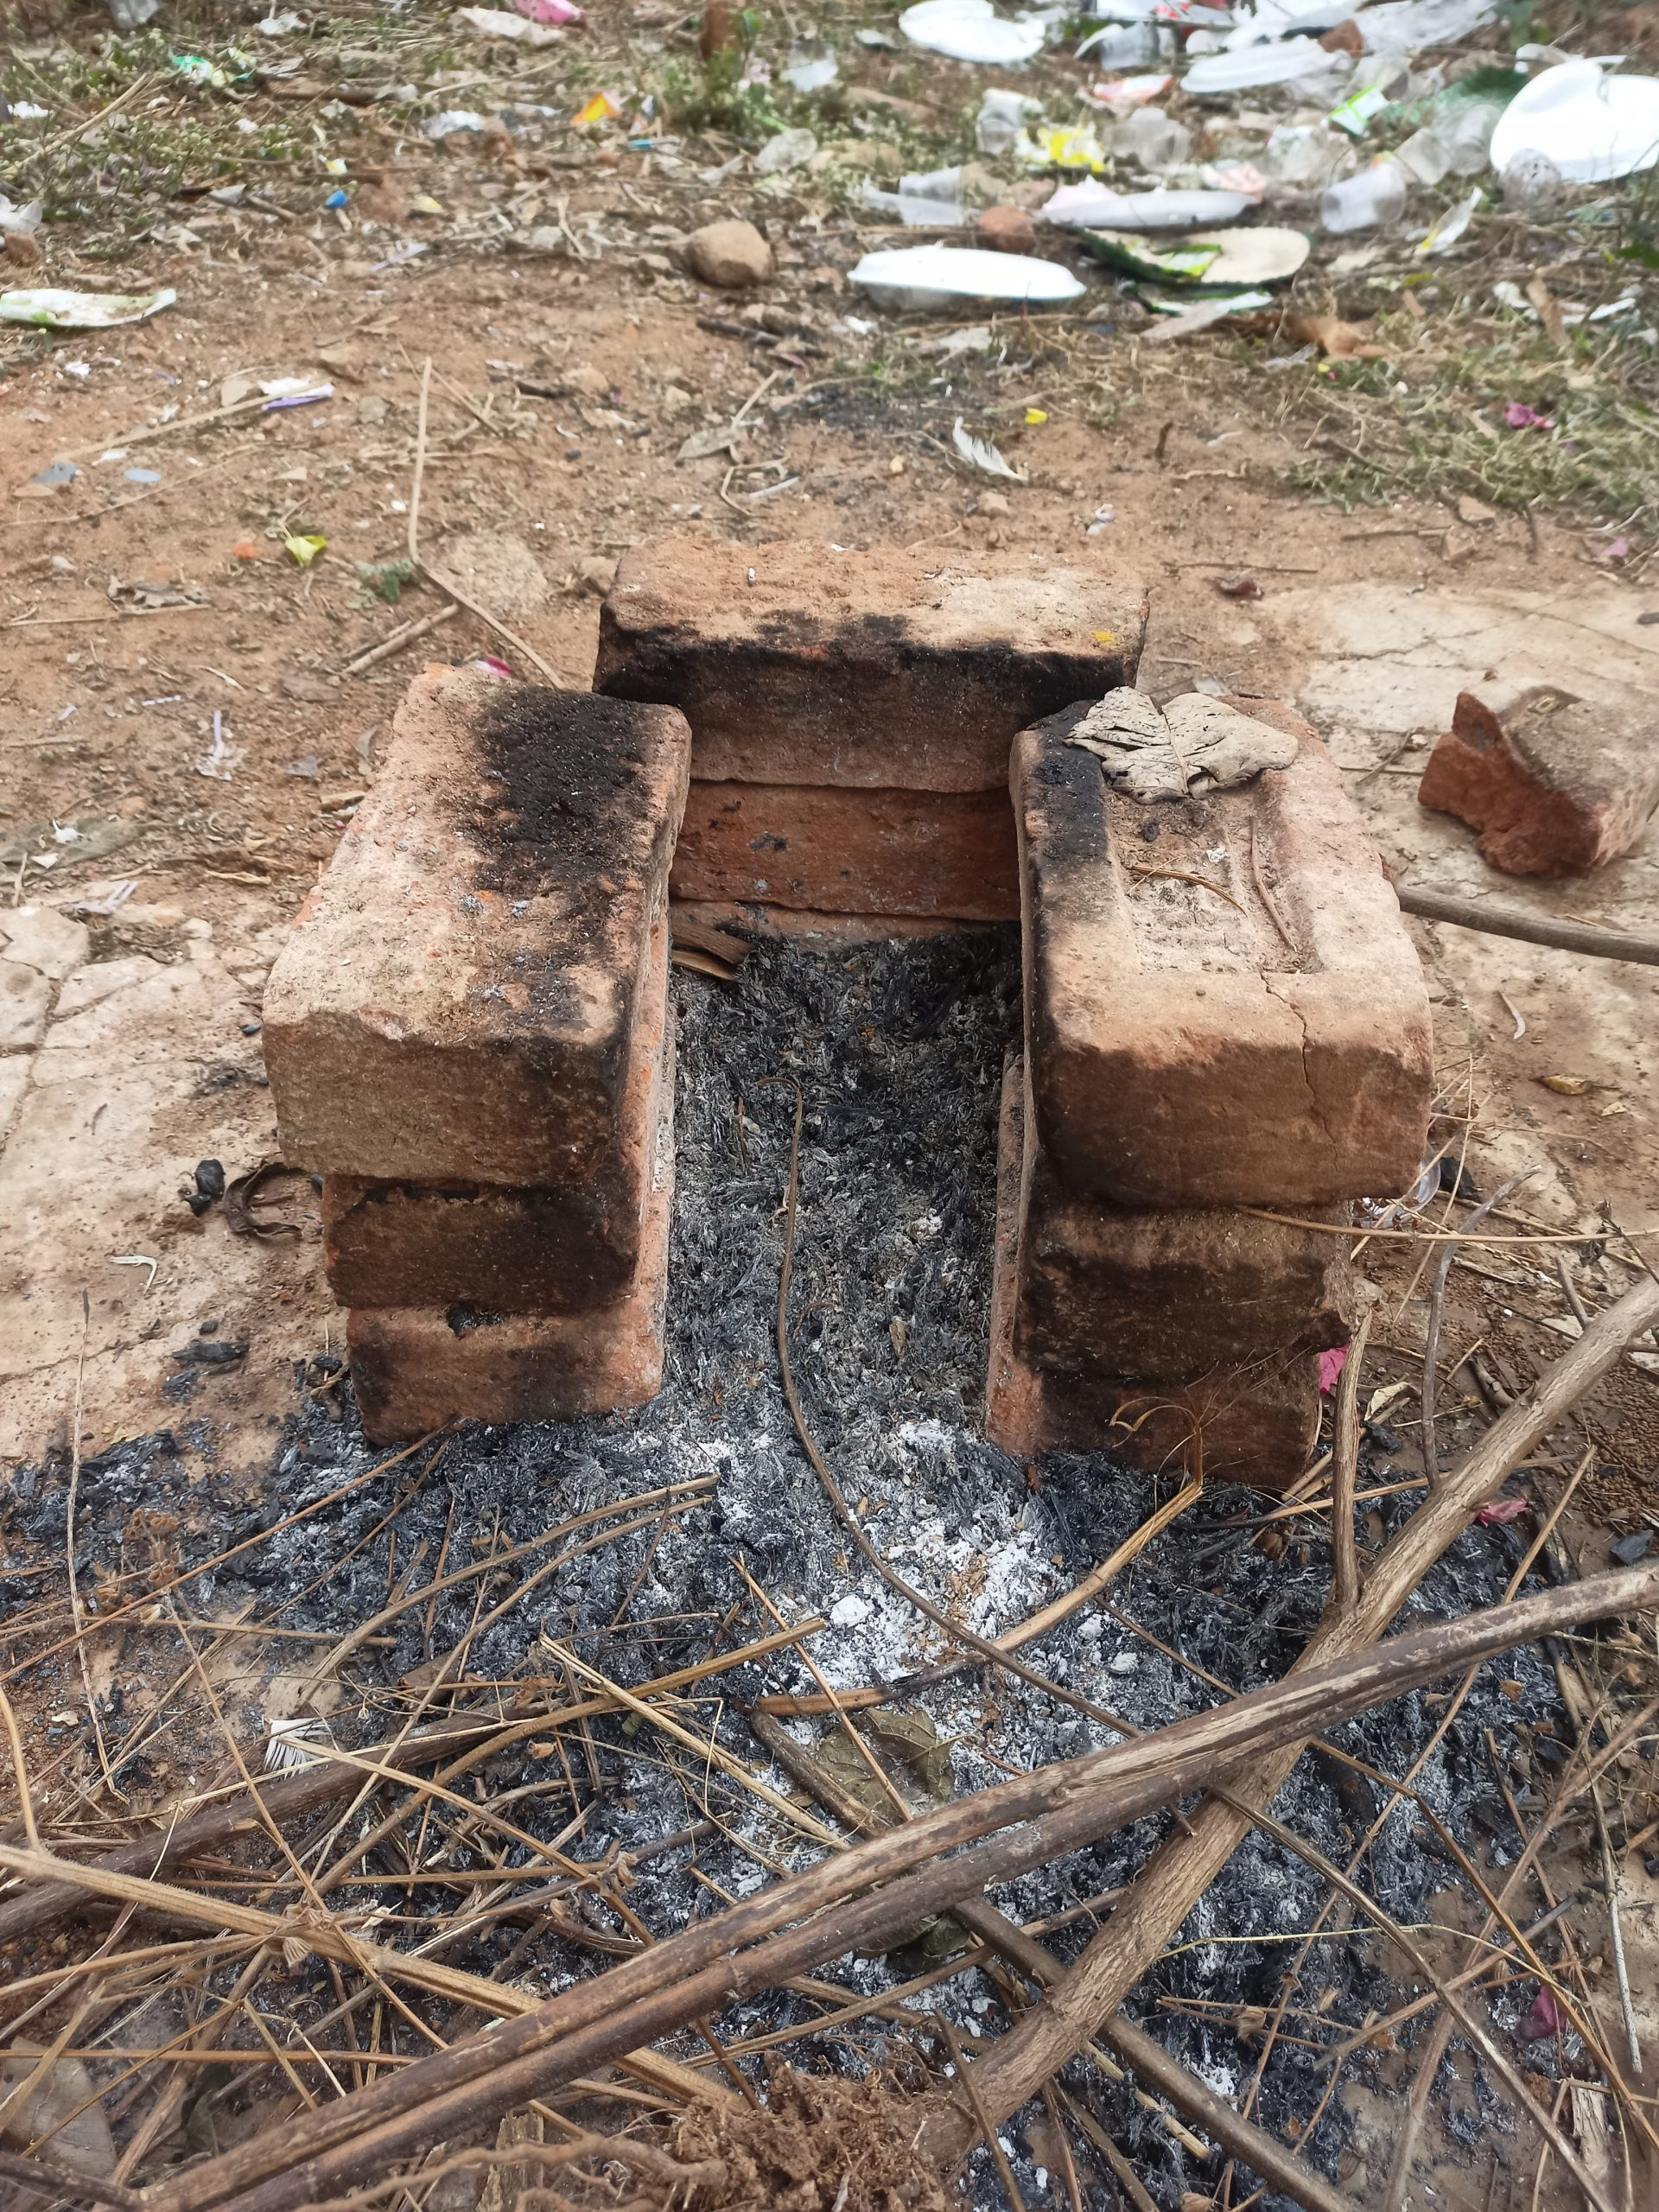 A stove made with bricks